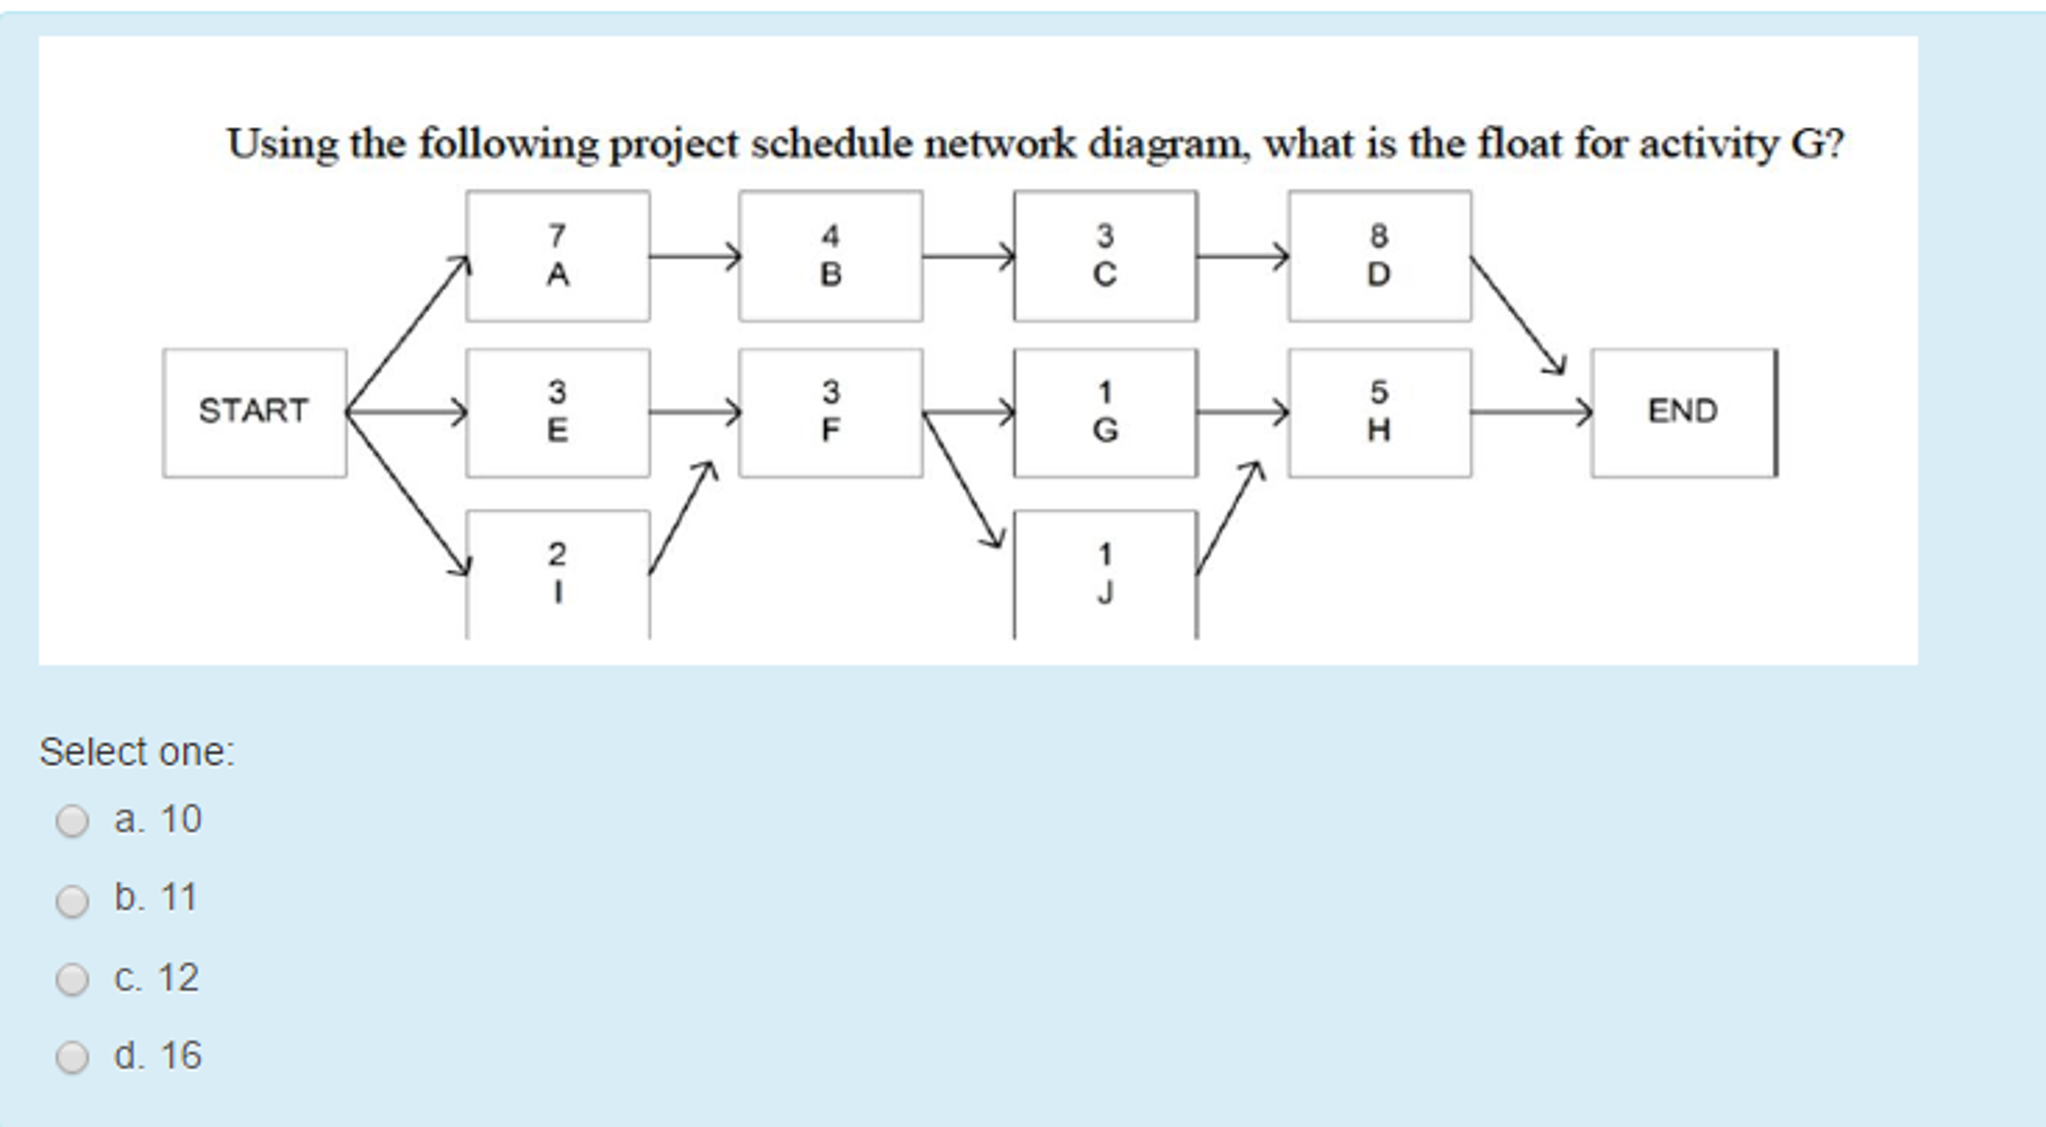 Operations management archive november 21 2016 chegg using the following project schedule network diagr fandeluxe Choice Image